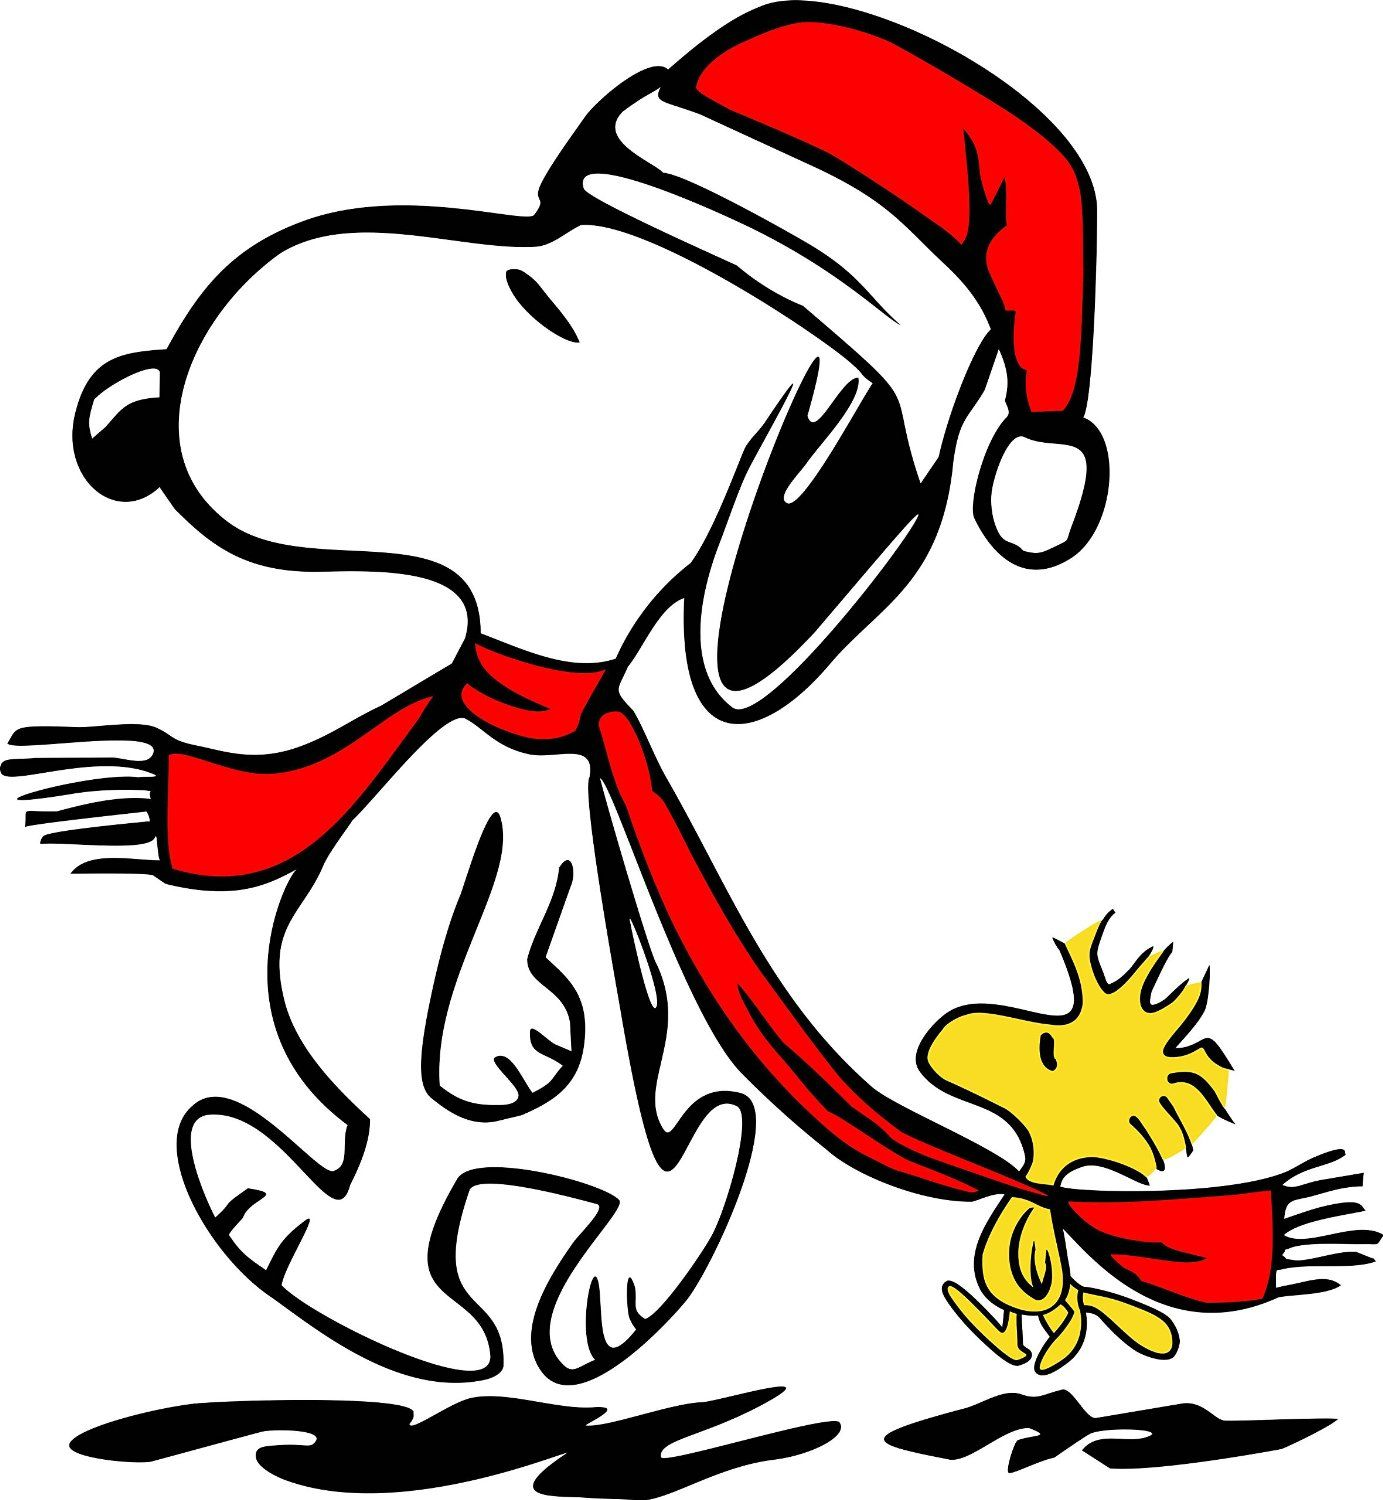 medium resolution of amazon com snoopy winter holiday christmas with woodstock in stocking cap and red scarf 14 x 16 inches new item